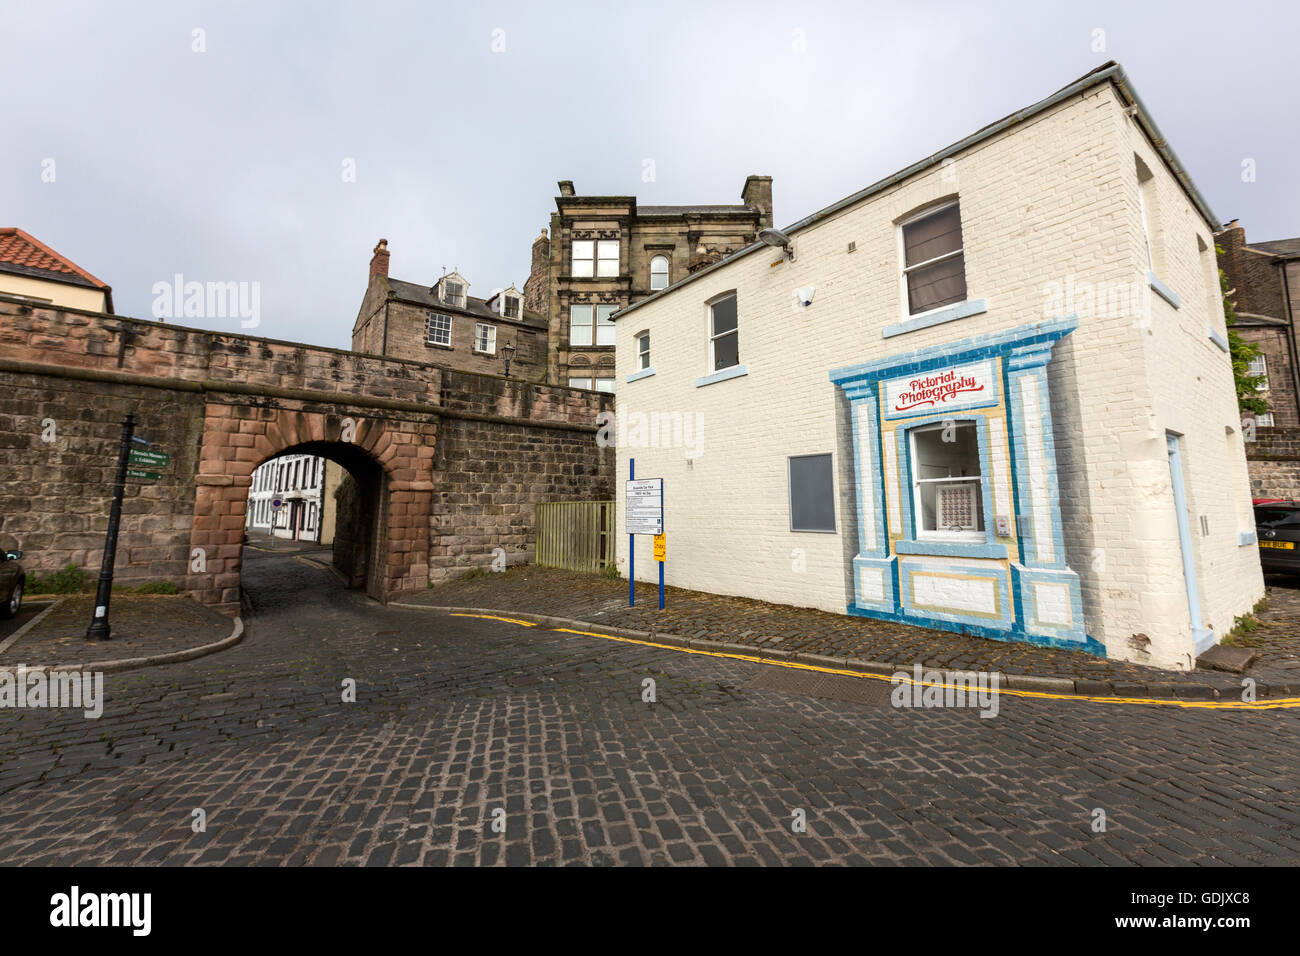 Berwick-upon-Tweed et Shoregate Pictorial photography shop en murs de quai, Northumberland, England, UK Photo Stock